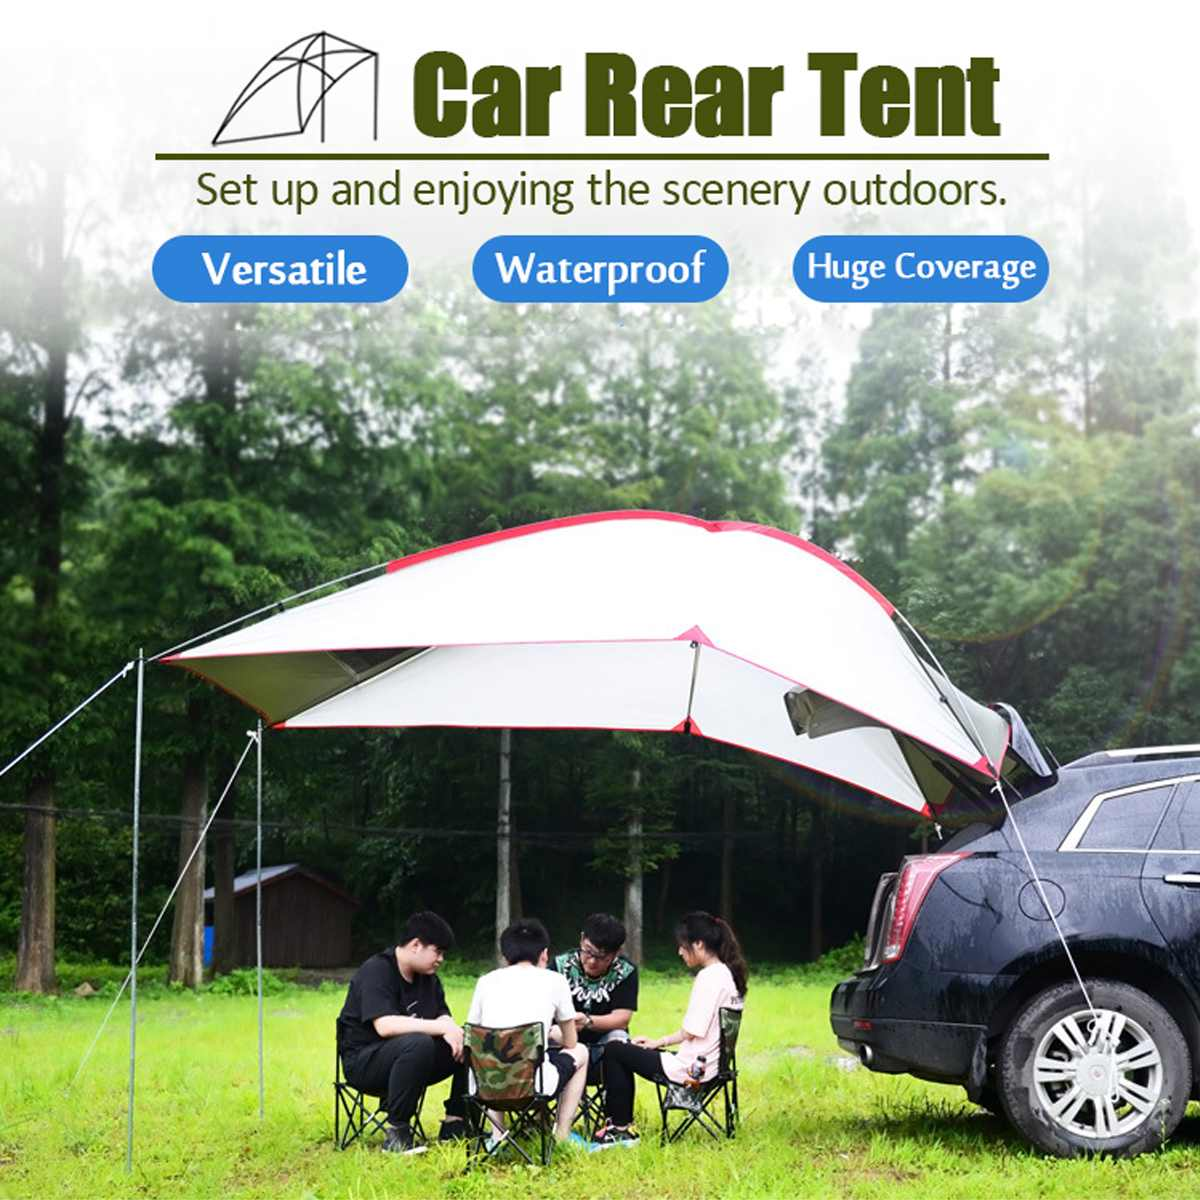 Waterproof Car Sunshade Portable Outdoor Camping Sun Shelter Tent with Screen Window Tailstock Weather Enclosure Sunshade PicnicWaterproof Car Sunshade Portable Outdoor Camping Sun Shelter Tent with Screen Window Tailstock Weather Enclosure Sunshade Picnic